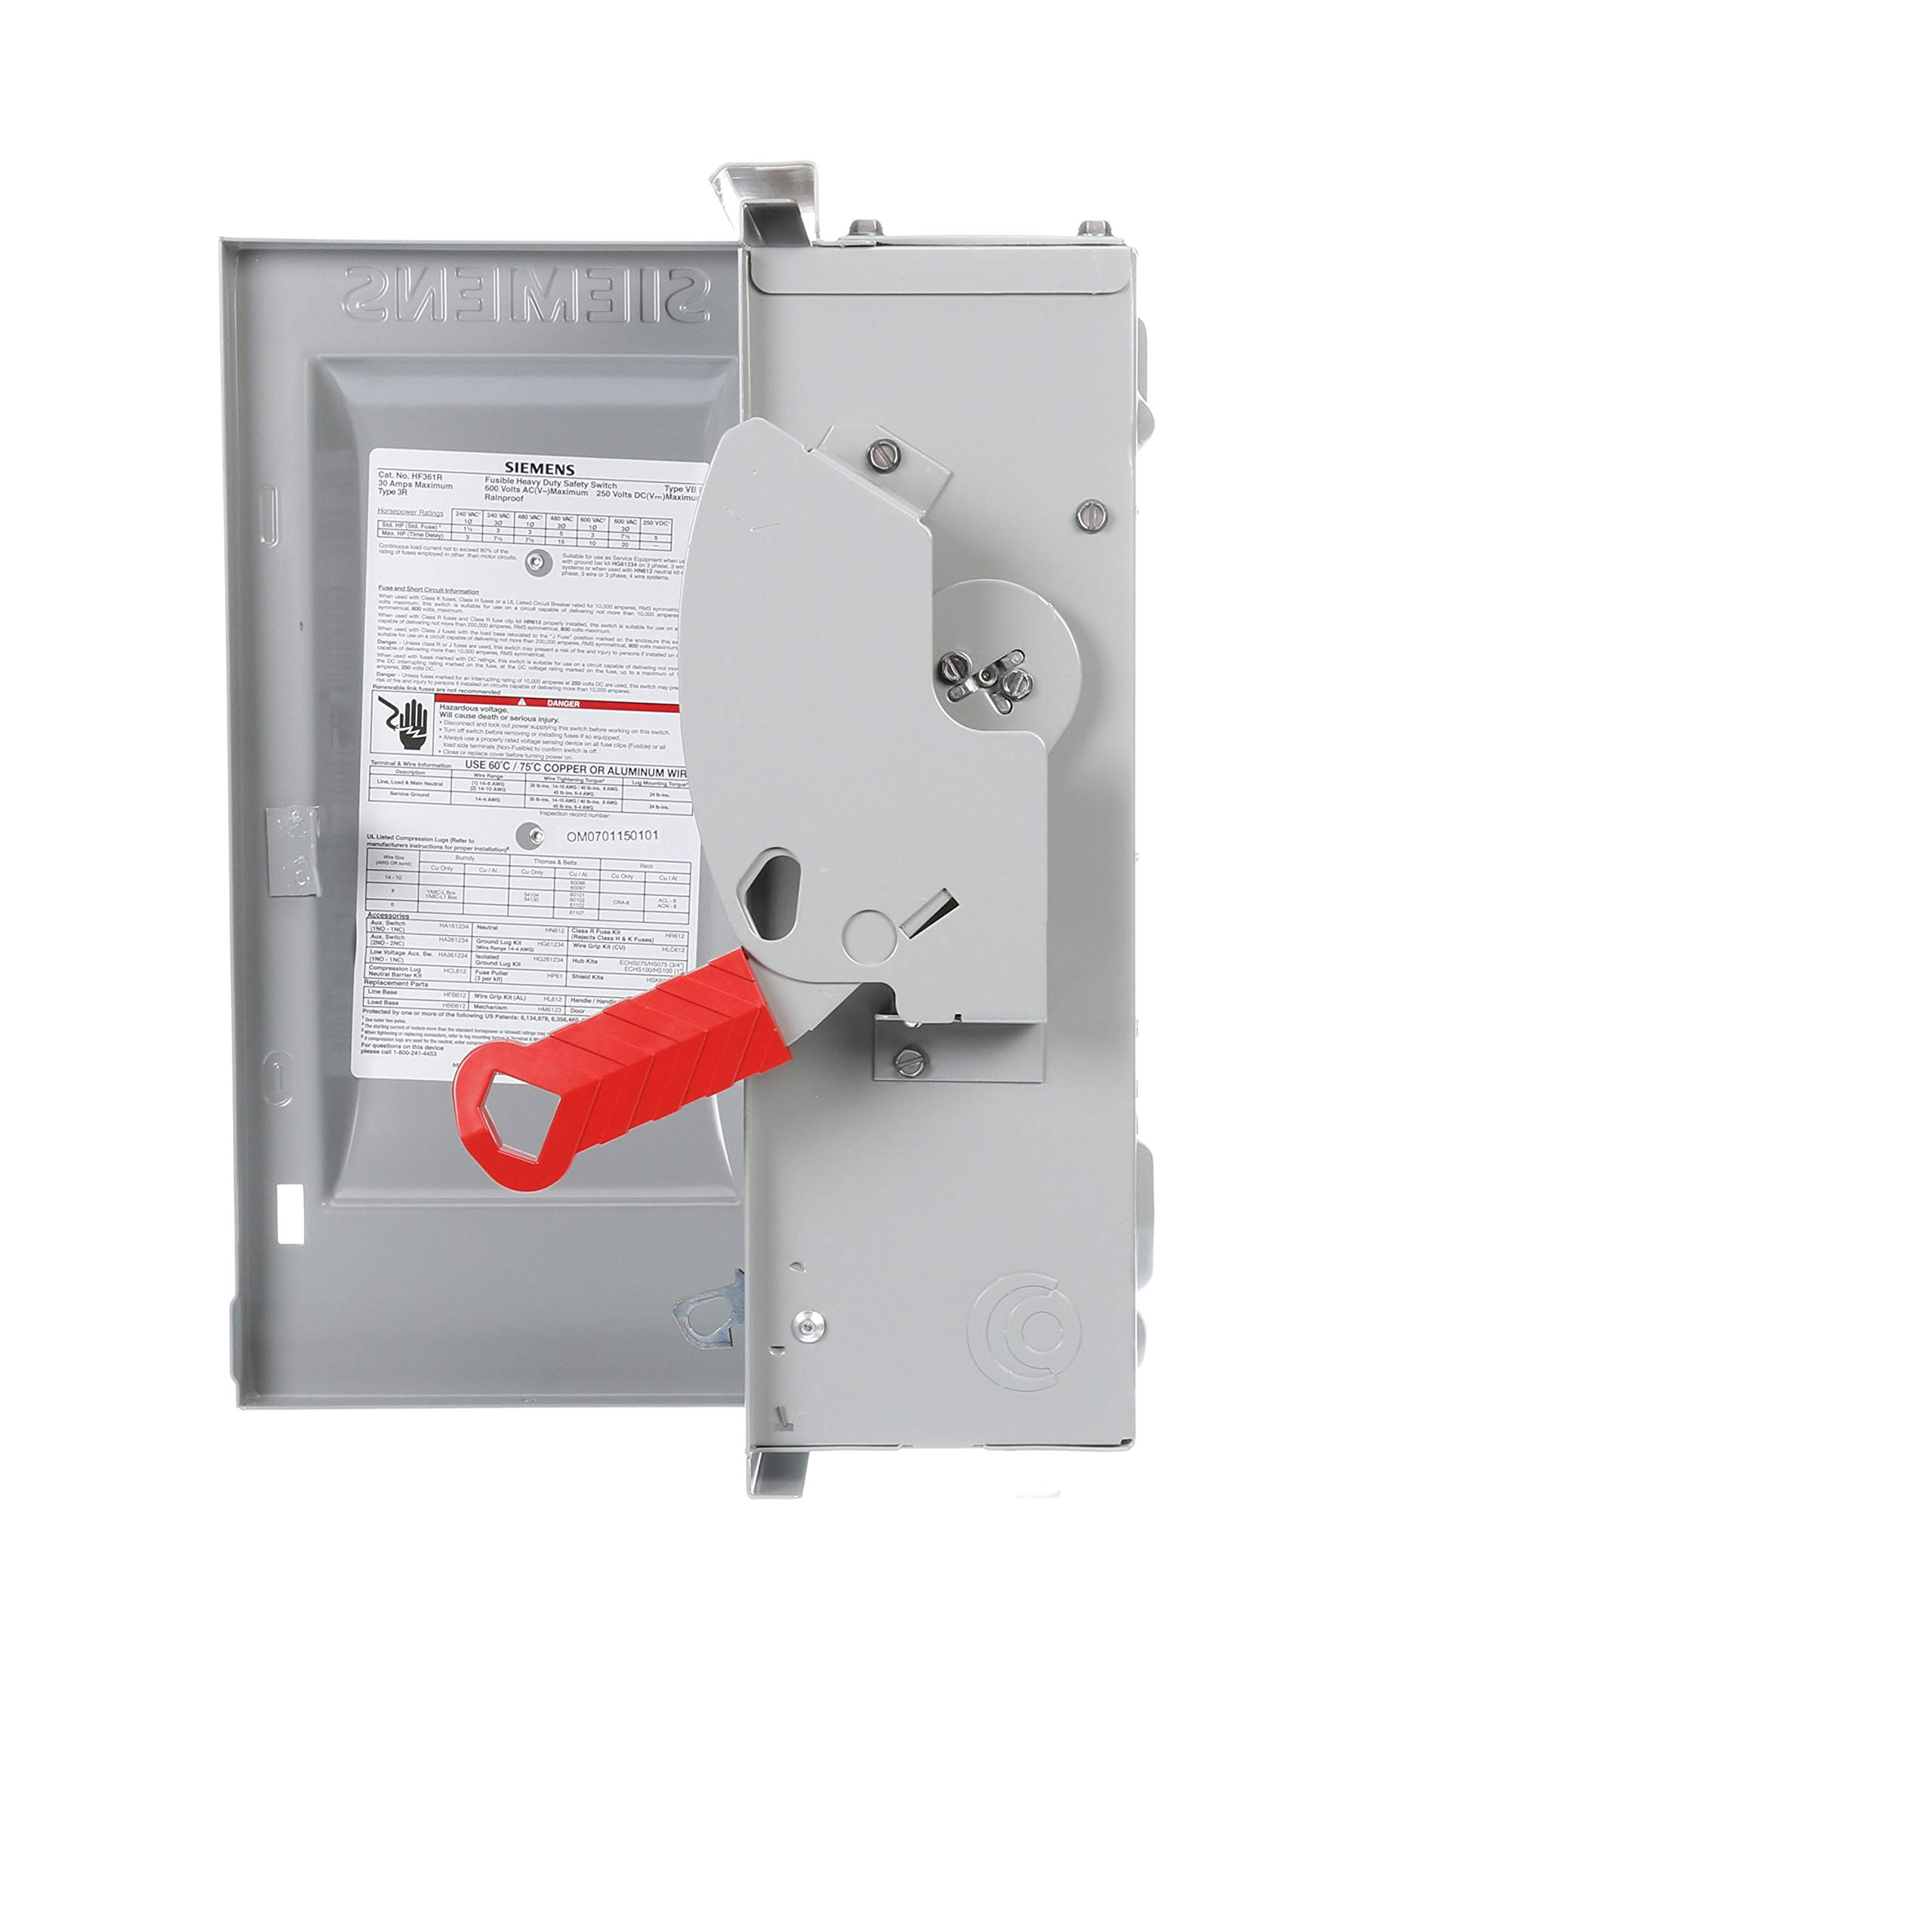 Siemens HF361R 30-Amp 3 Pole 600-volt 3 Wire Fused Heavy Duty Safety Switches by SIEMENS (Image #3)